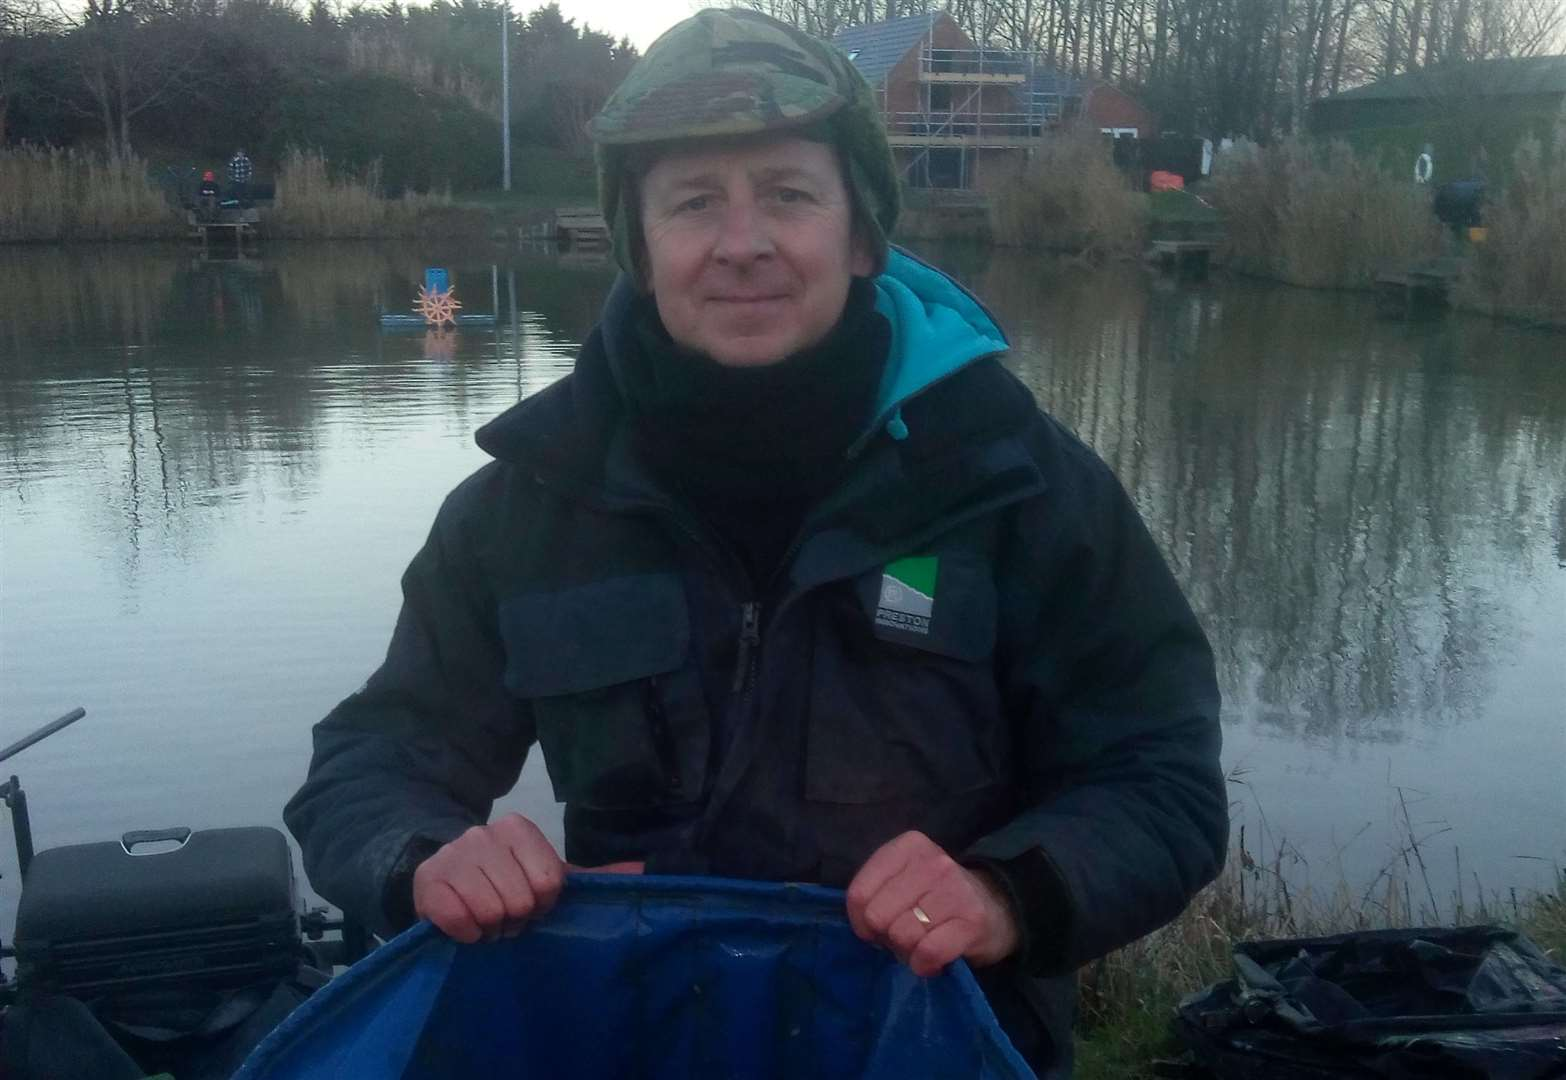 Tydd Gote Angling Club tight match on North Level Drain at Main Road sees Andrew Kilby edge out Steve Borrett